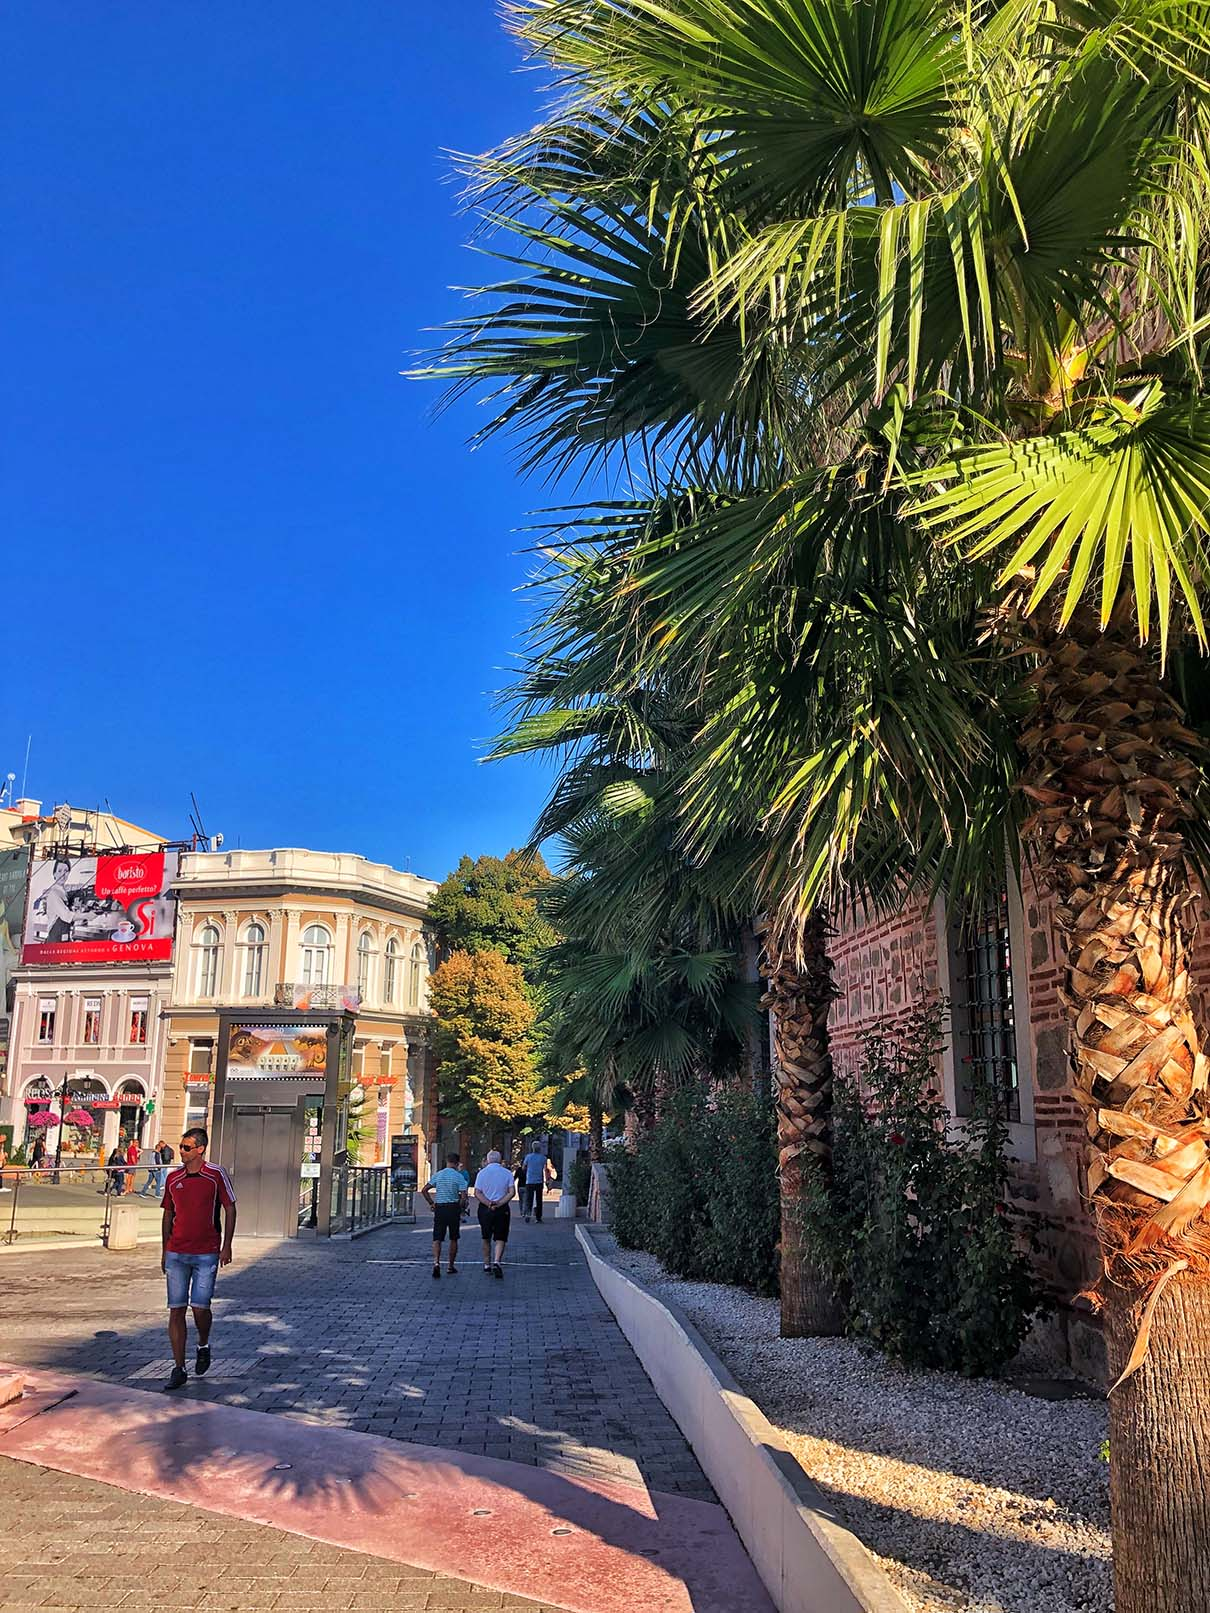 plovdiv city center palm square